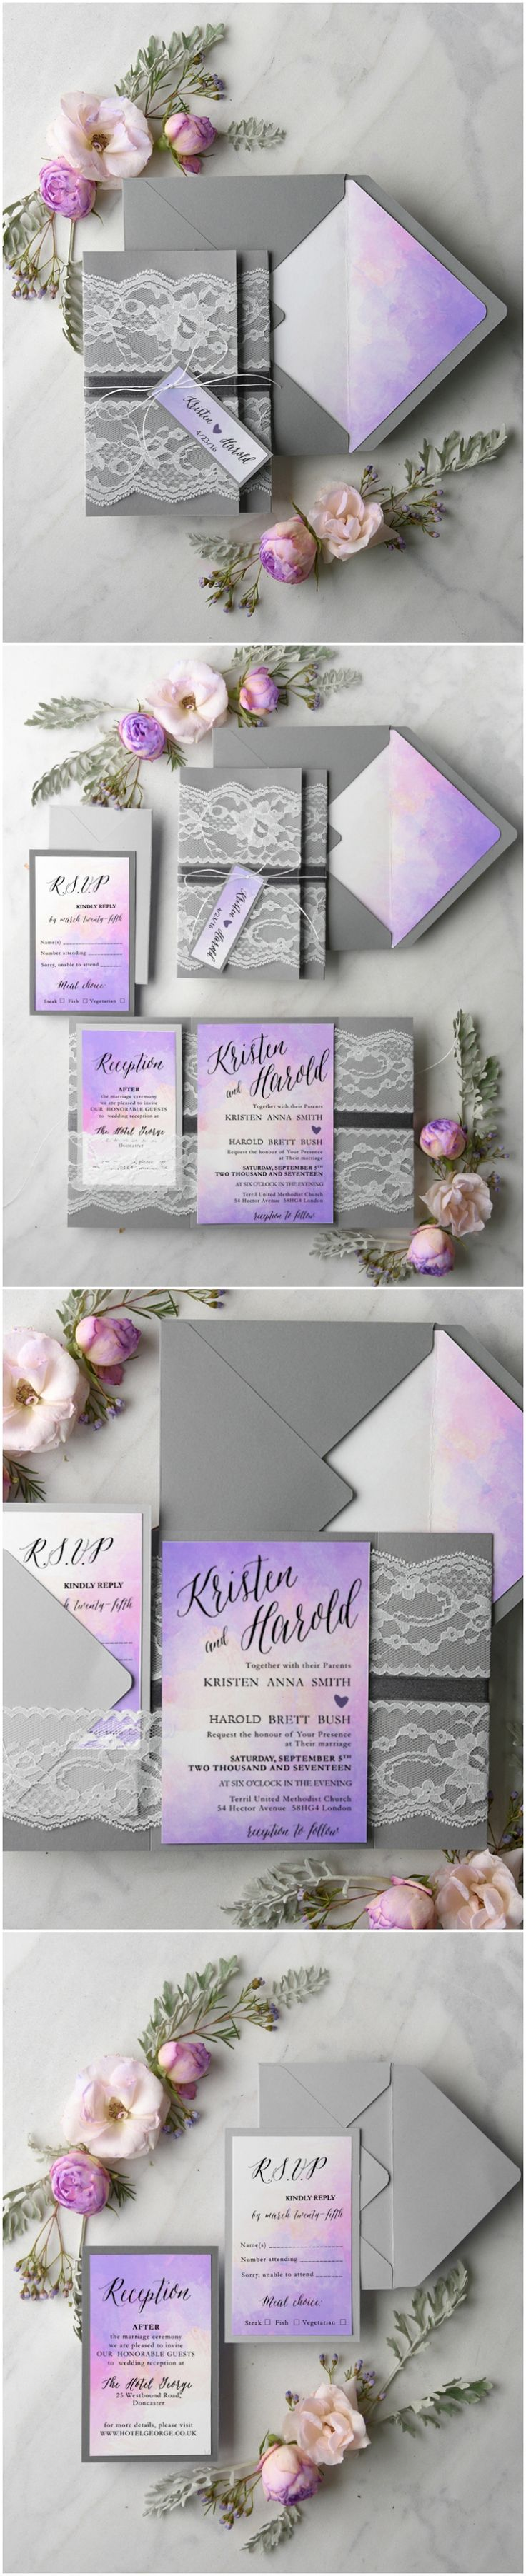 wedding invitation wording with no reception%0A Ombre Watercolor Wedding Invitations with lace  ombre  watercolor   weddingideas  weddingtrends  grey